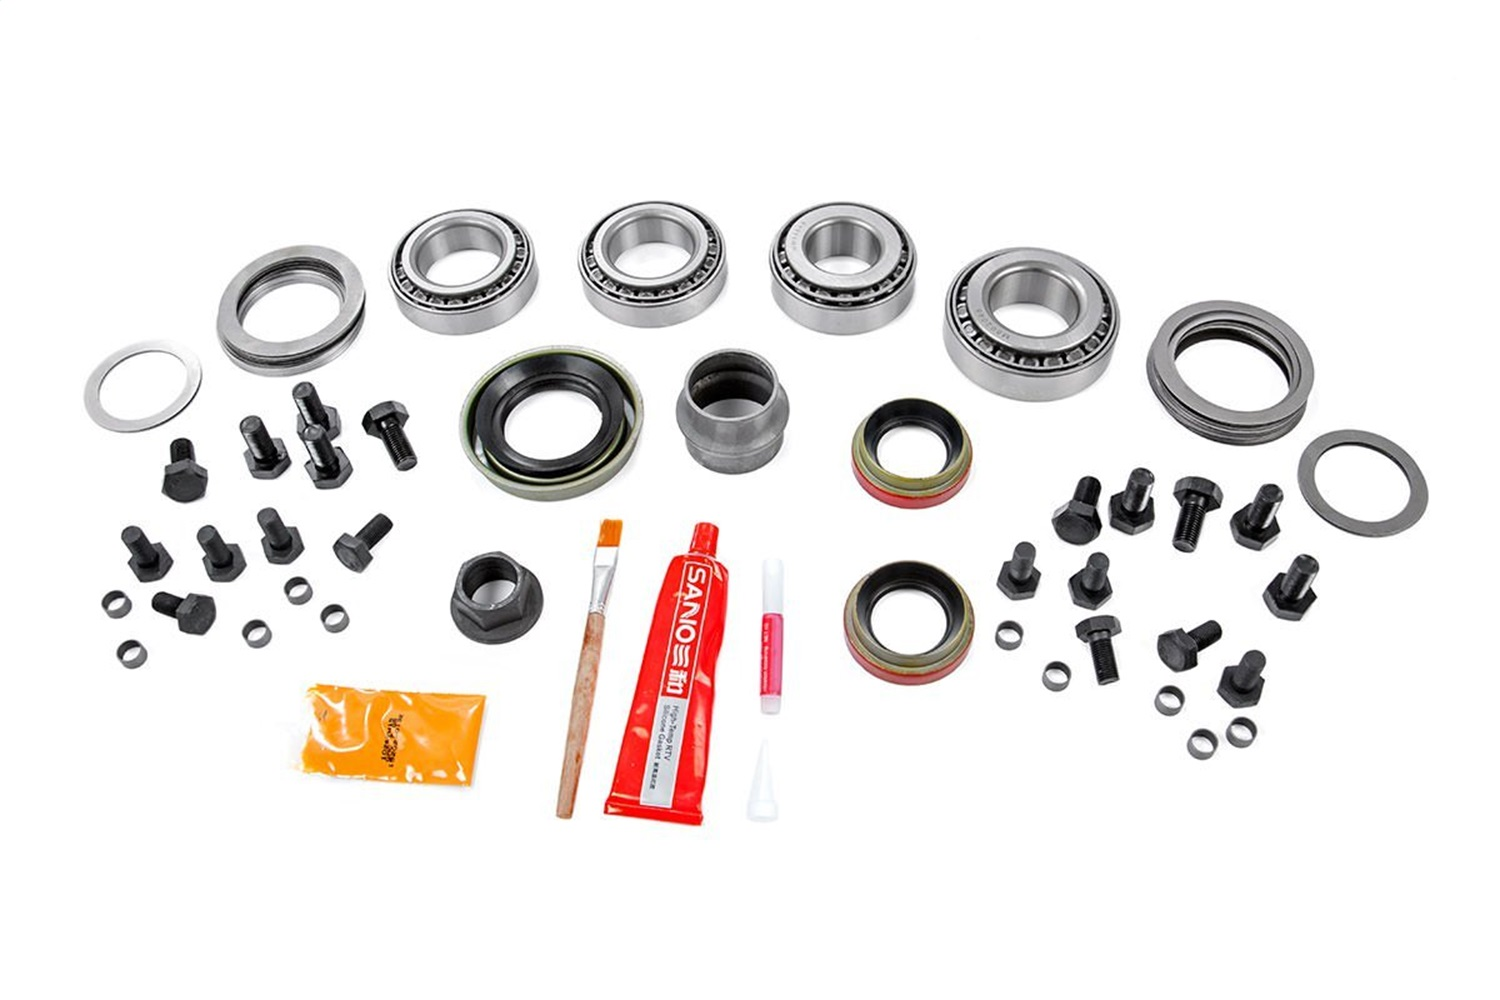 Rough Country 54400031 Ring And Pinion Master Install Kit